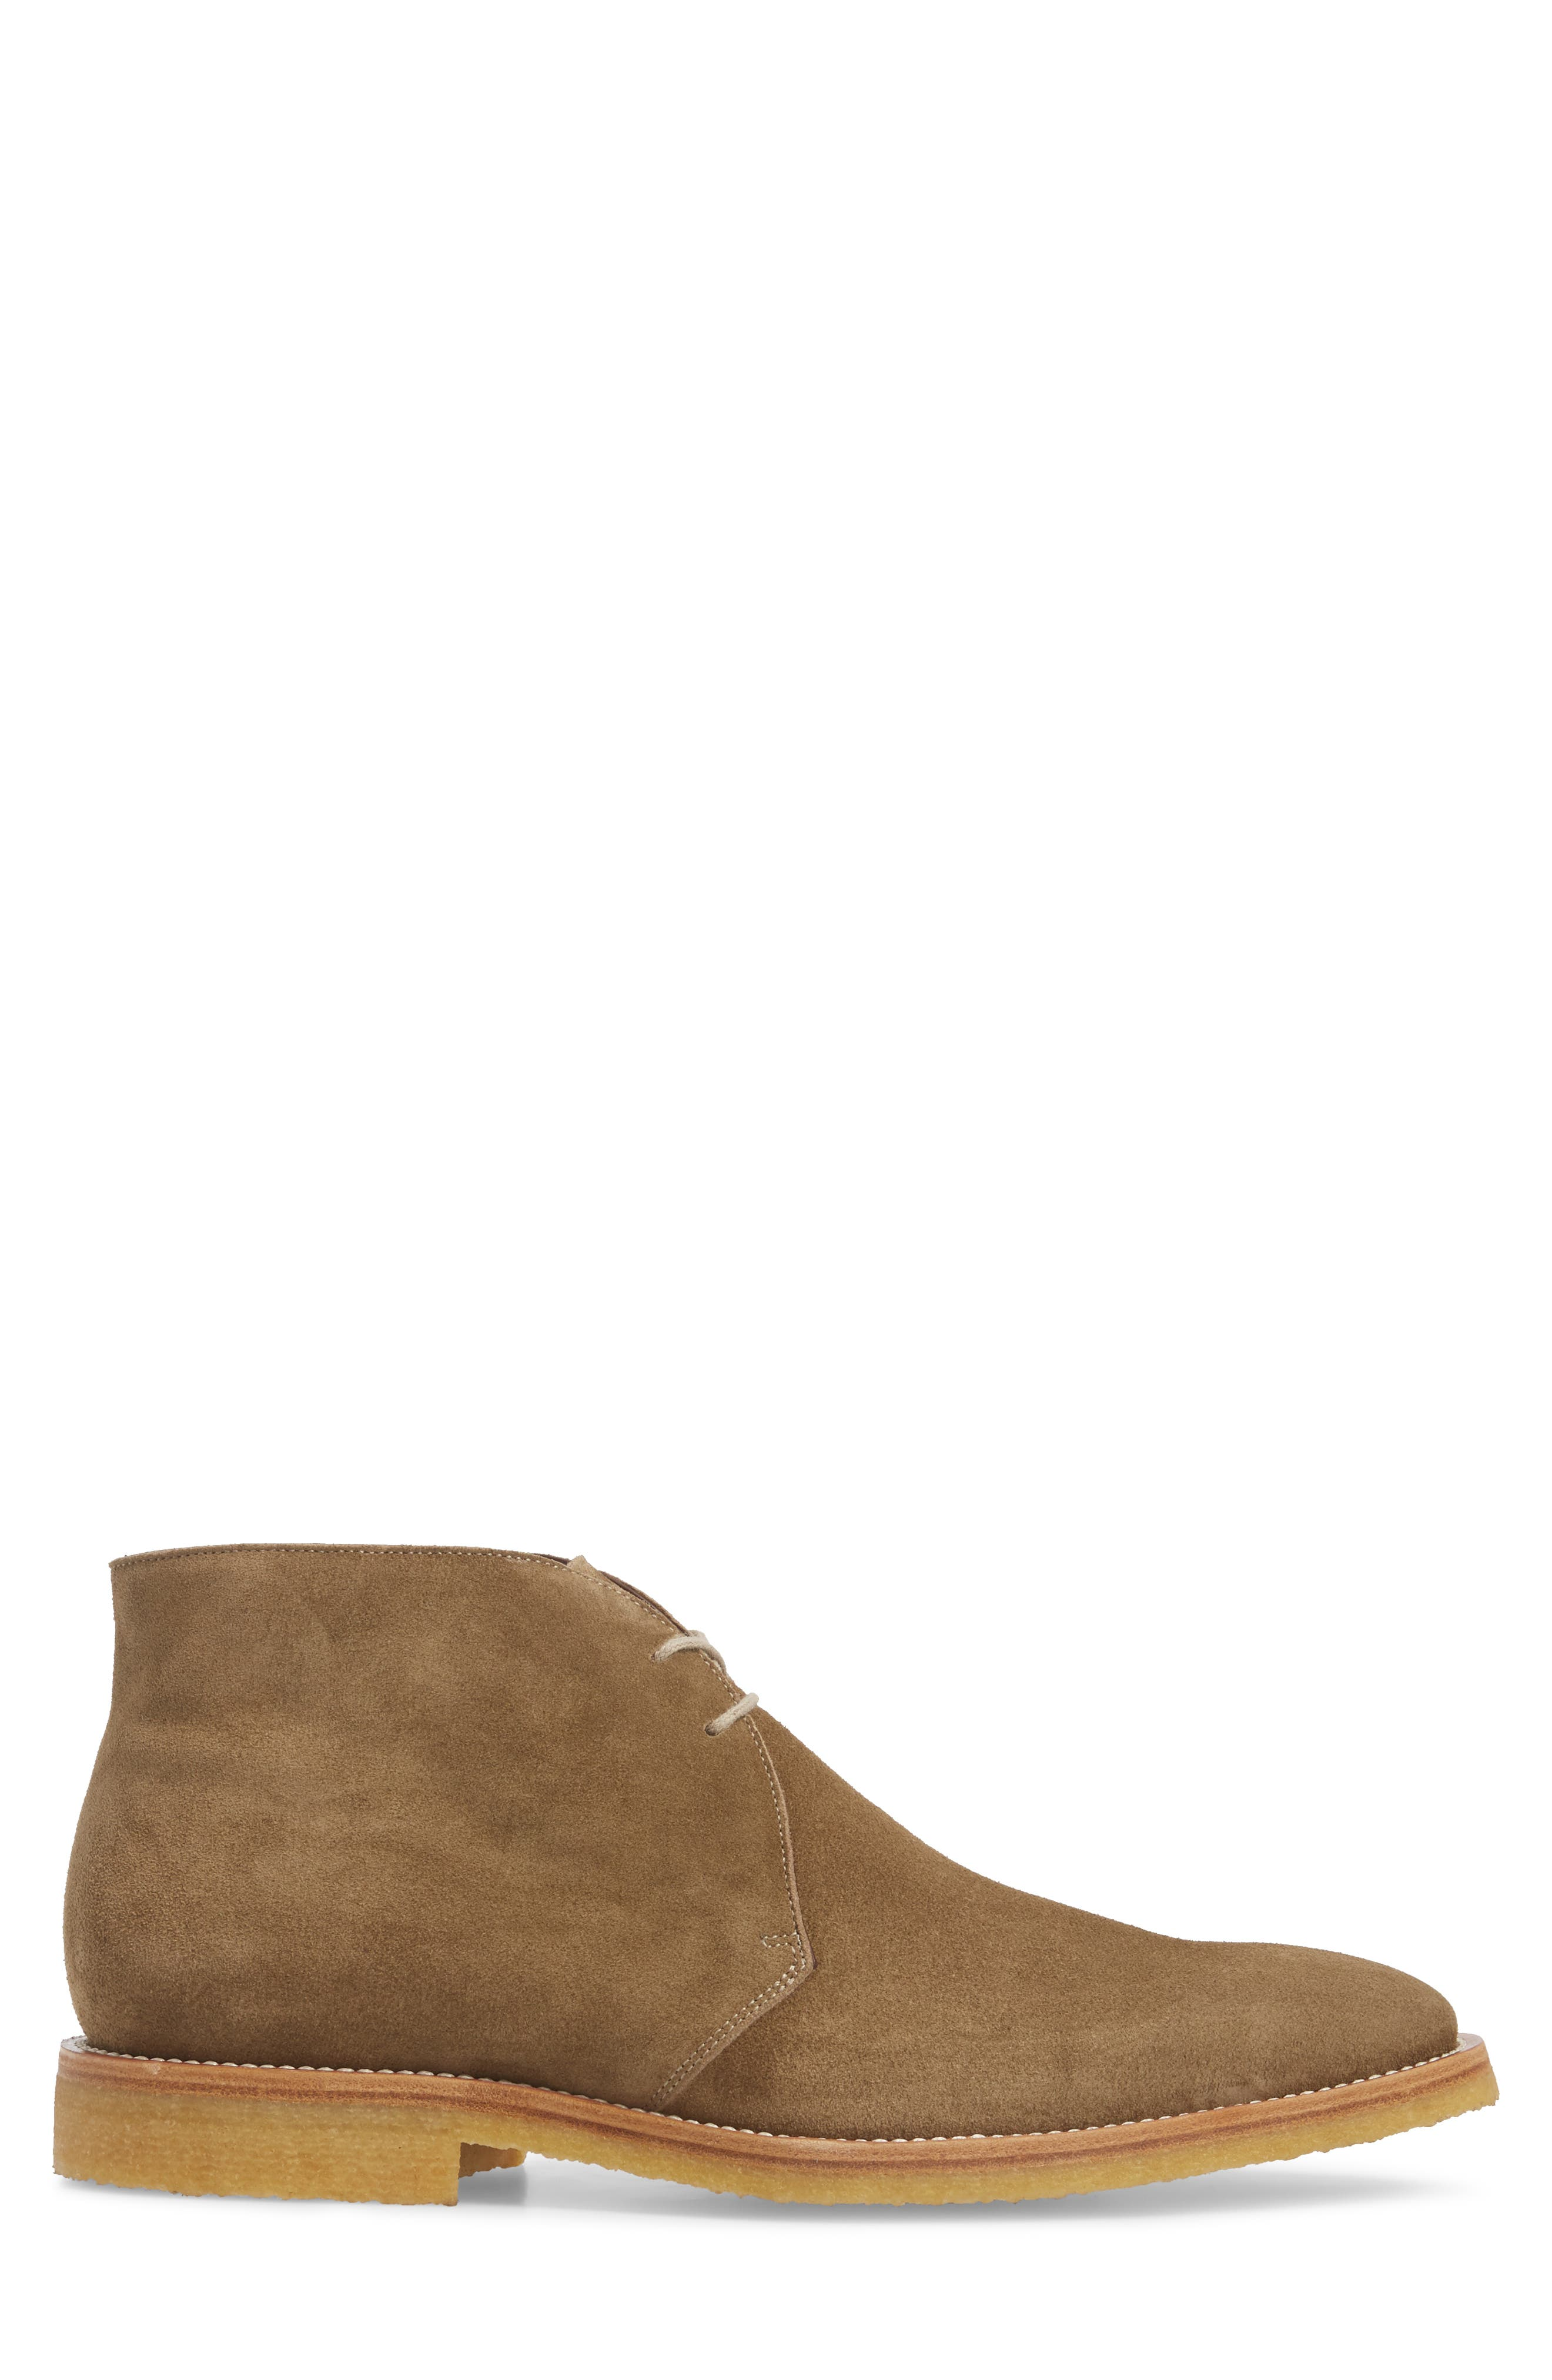 Banker Chukka Boot,                             Alternate thumbnail 3, color,                             Taupe Suede